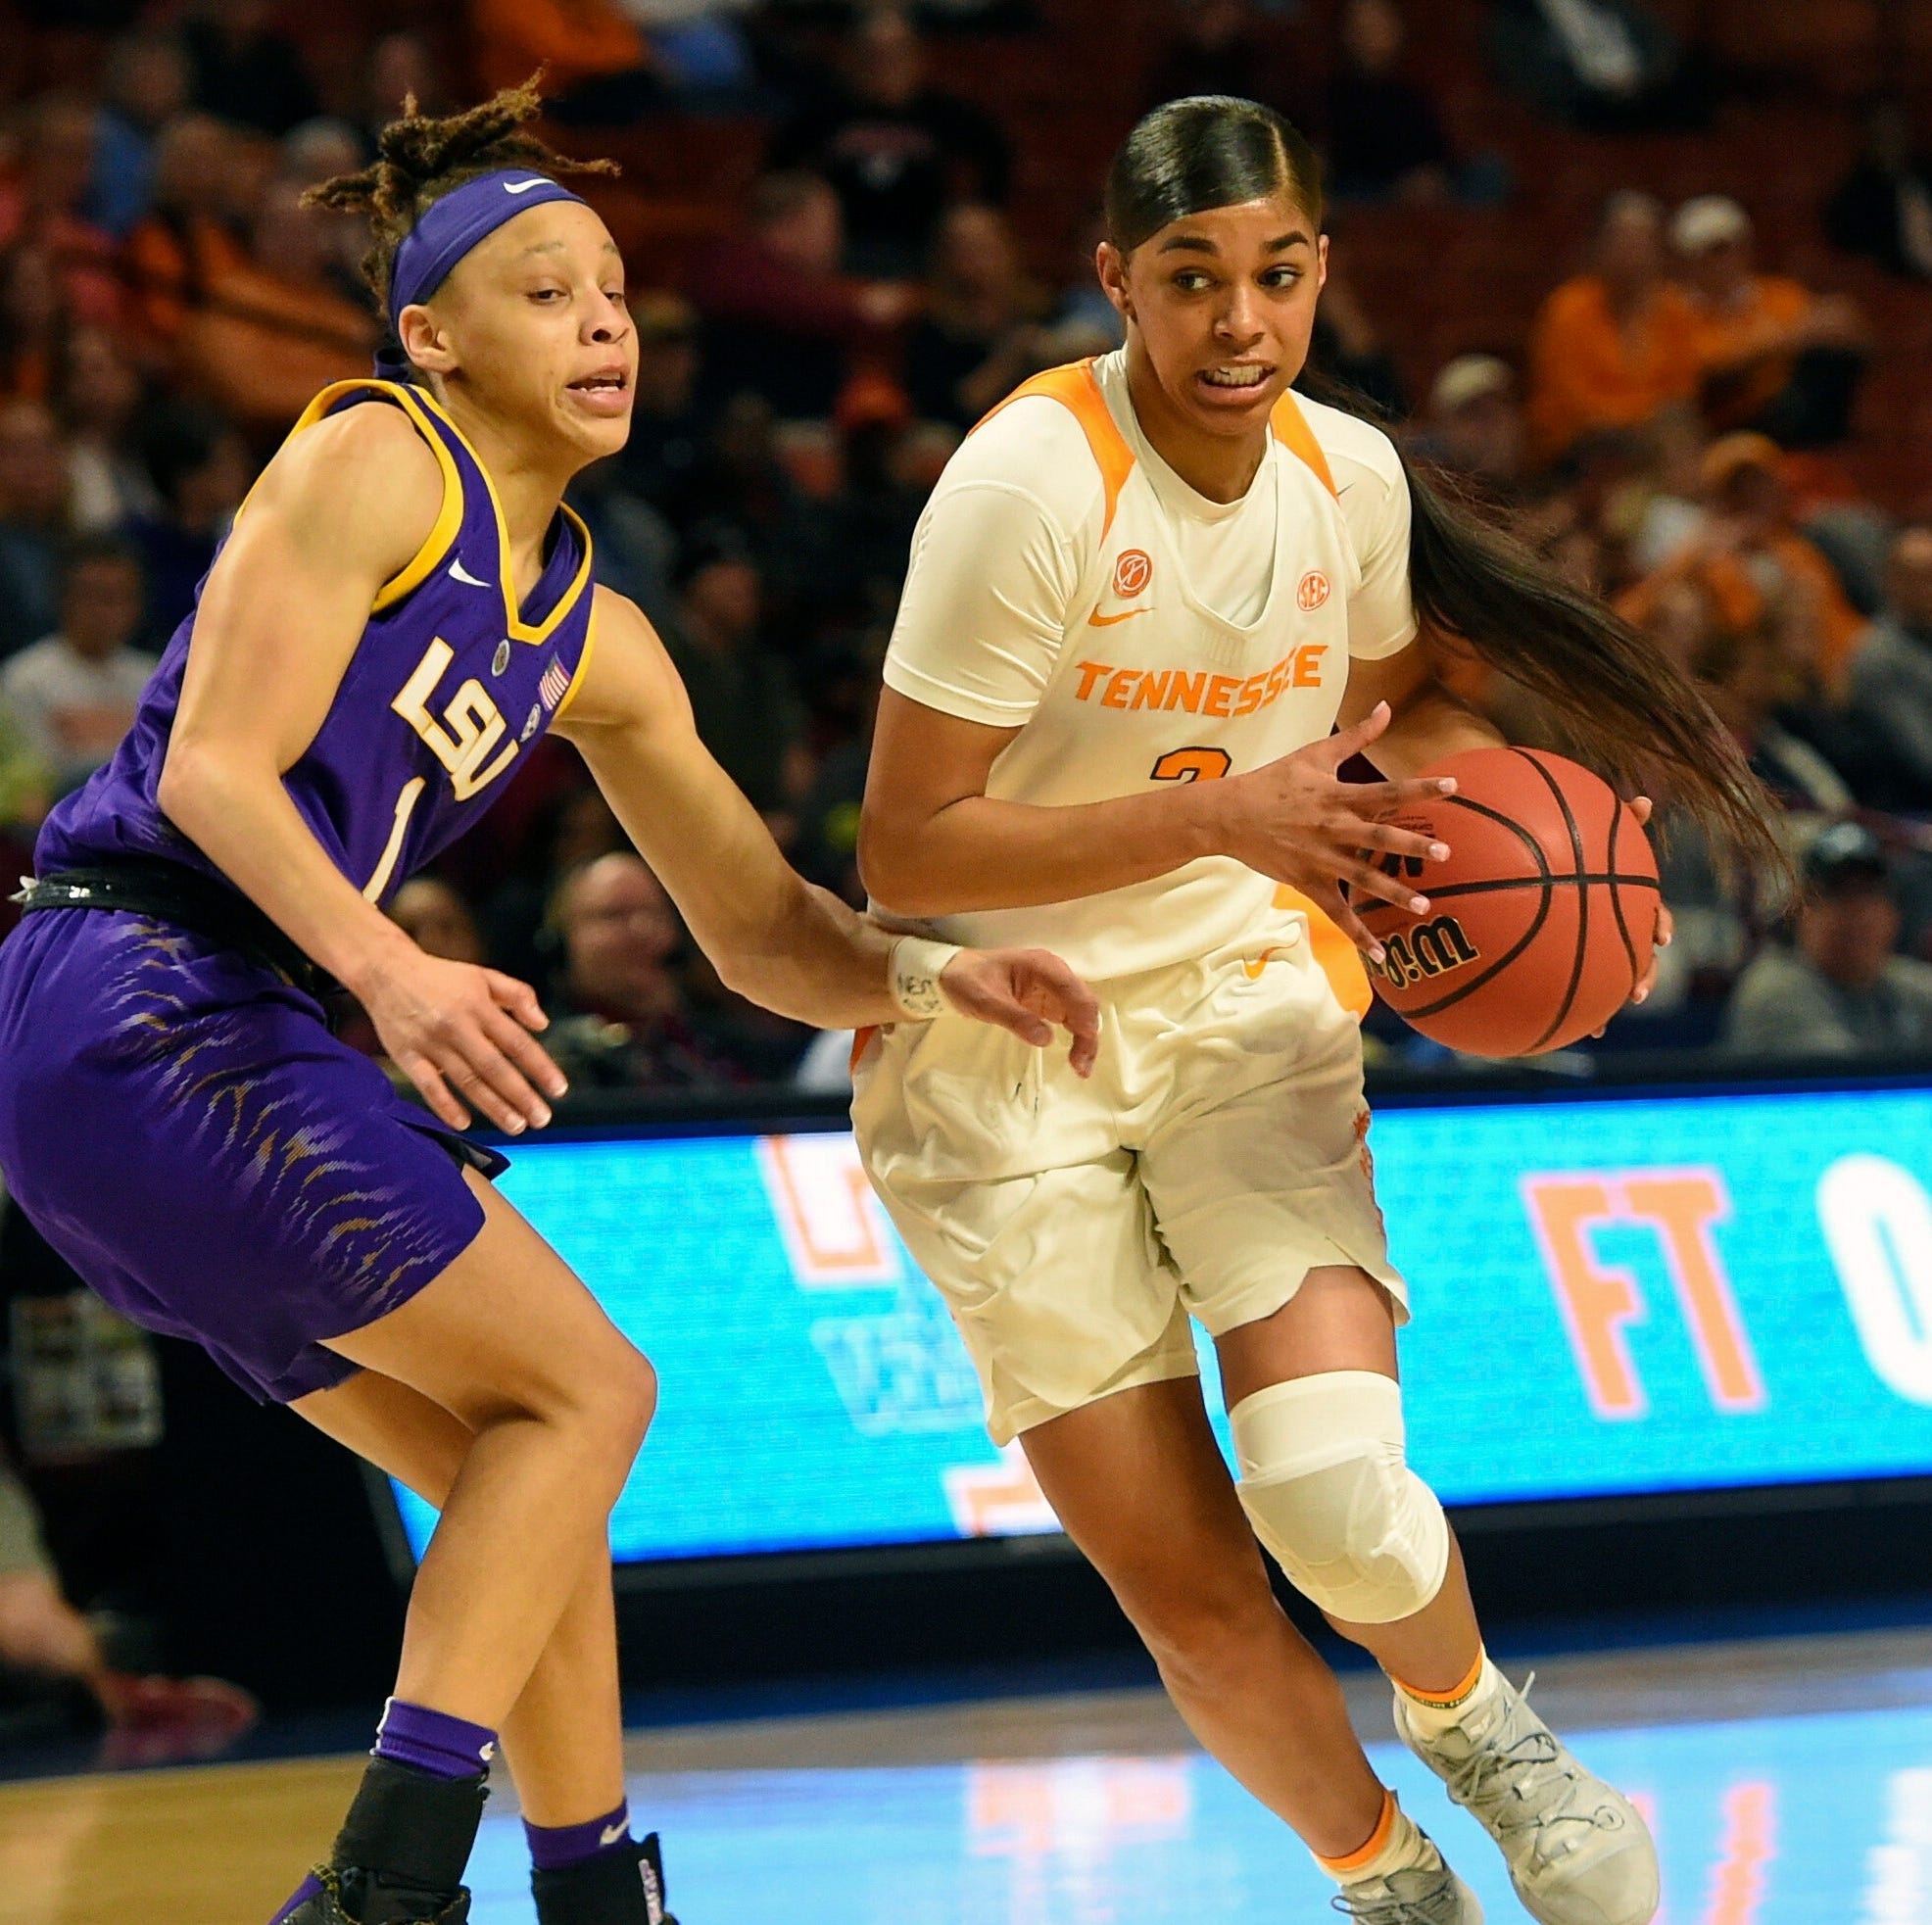 Lady Vols show some 'grit' to beat LSU in SEC tournament